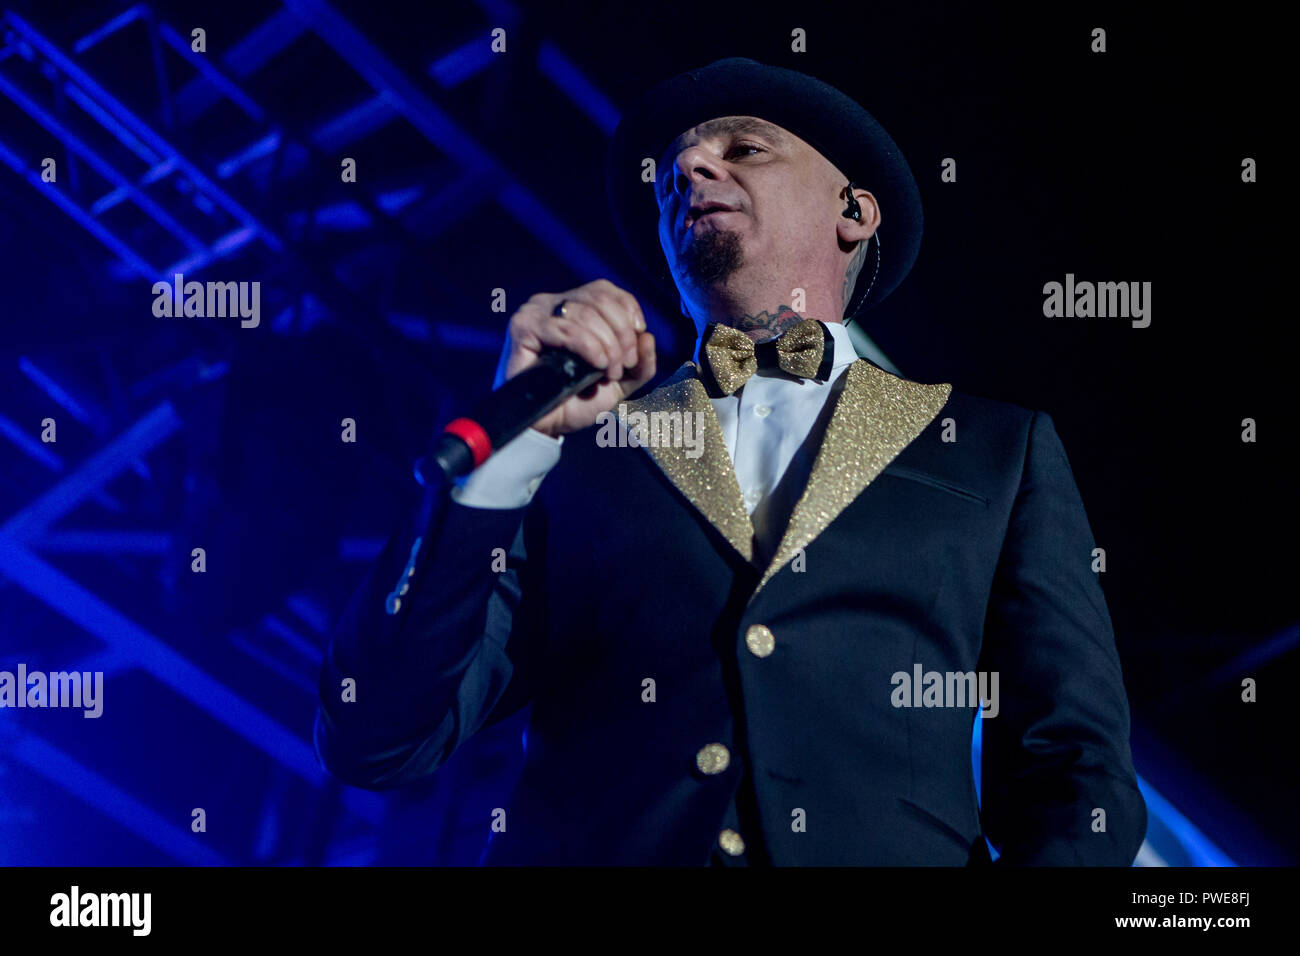 Milan, Italy. 15th Oct 2018. J-Ax performs live at Fabrique in Milano, Italy, on October 15, 2018, for the first of ten sold-out concert Credit: Mairo Cinquetti/Alamy Live News - Stock Image